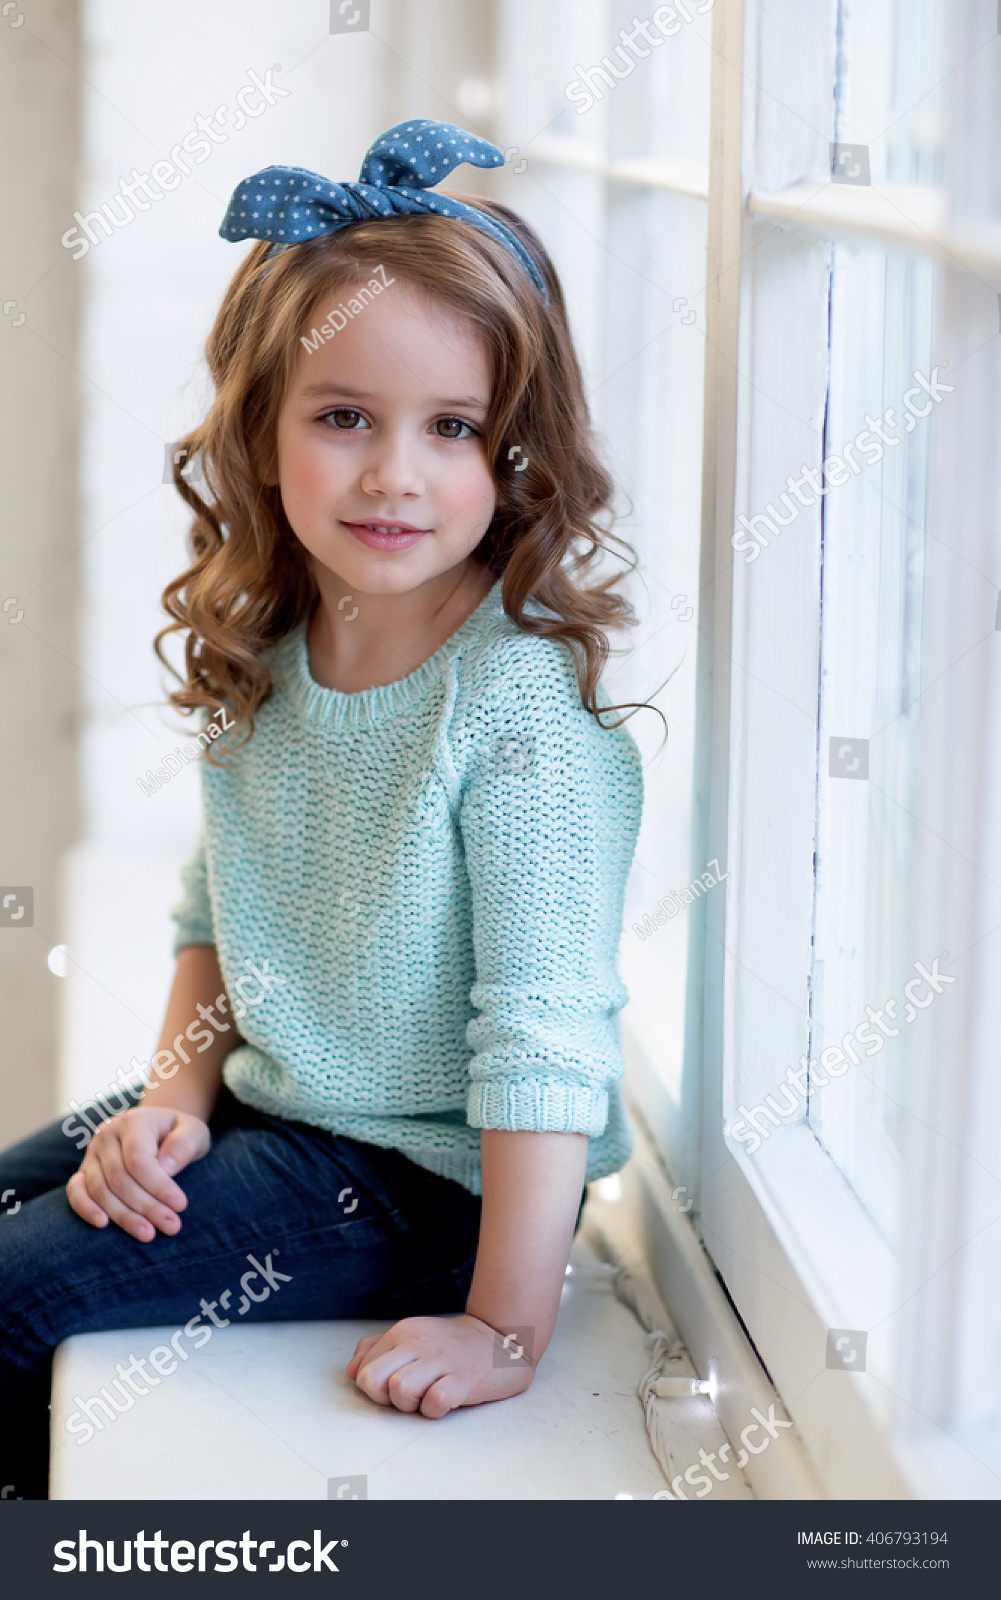 Beautiful Girl Curly Hair Sits On Stock Photo 406793194 - Shutterstock